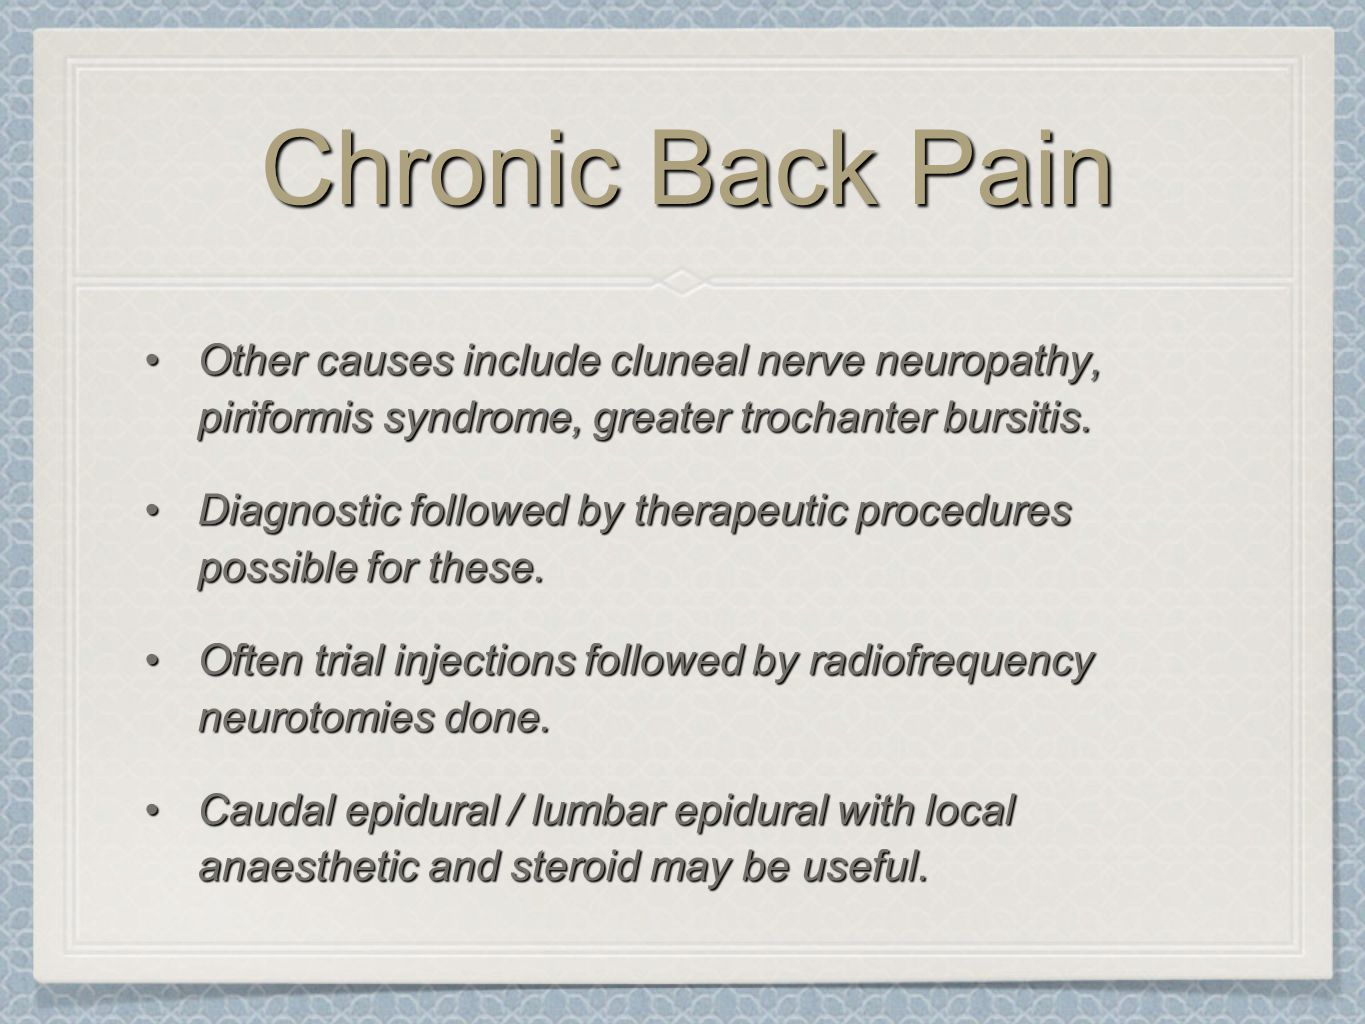 Chronic Back Pain Other causes include cluneal nerve neuropathy, piriformis syndrome, greater trochanter bursitis.